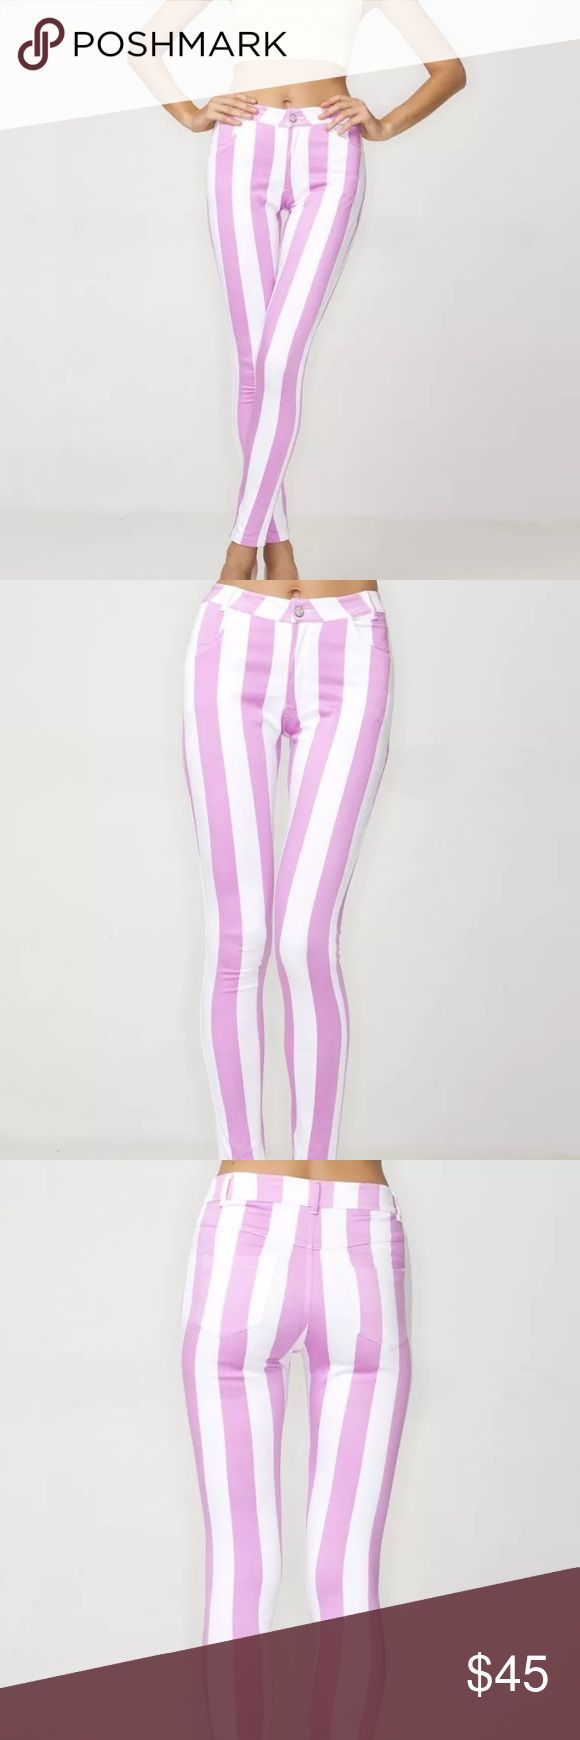 NWOT Motel Rocks Skinny Striped Pants Jeans MOTEL CLOTHING  NEW, never worn!  Amazing statement stretch skinny jeans in a sugary candy pink and white vertical stripe material. These pastel pink Jordan jeans have a high waist and are in a flattering skinny fit, with side and back pockets. Team these striped Motel jeans with ankle boots or a wedge to elongate the leg even further.  Size: Small (fits like a womens 25-27) Material:86% Rayon, 14% Polyester   Model in pictures wears S - Model…